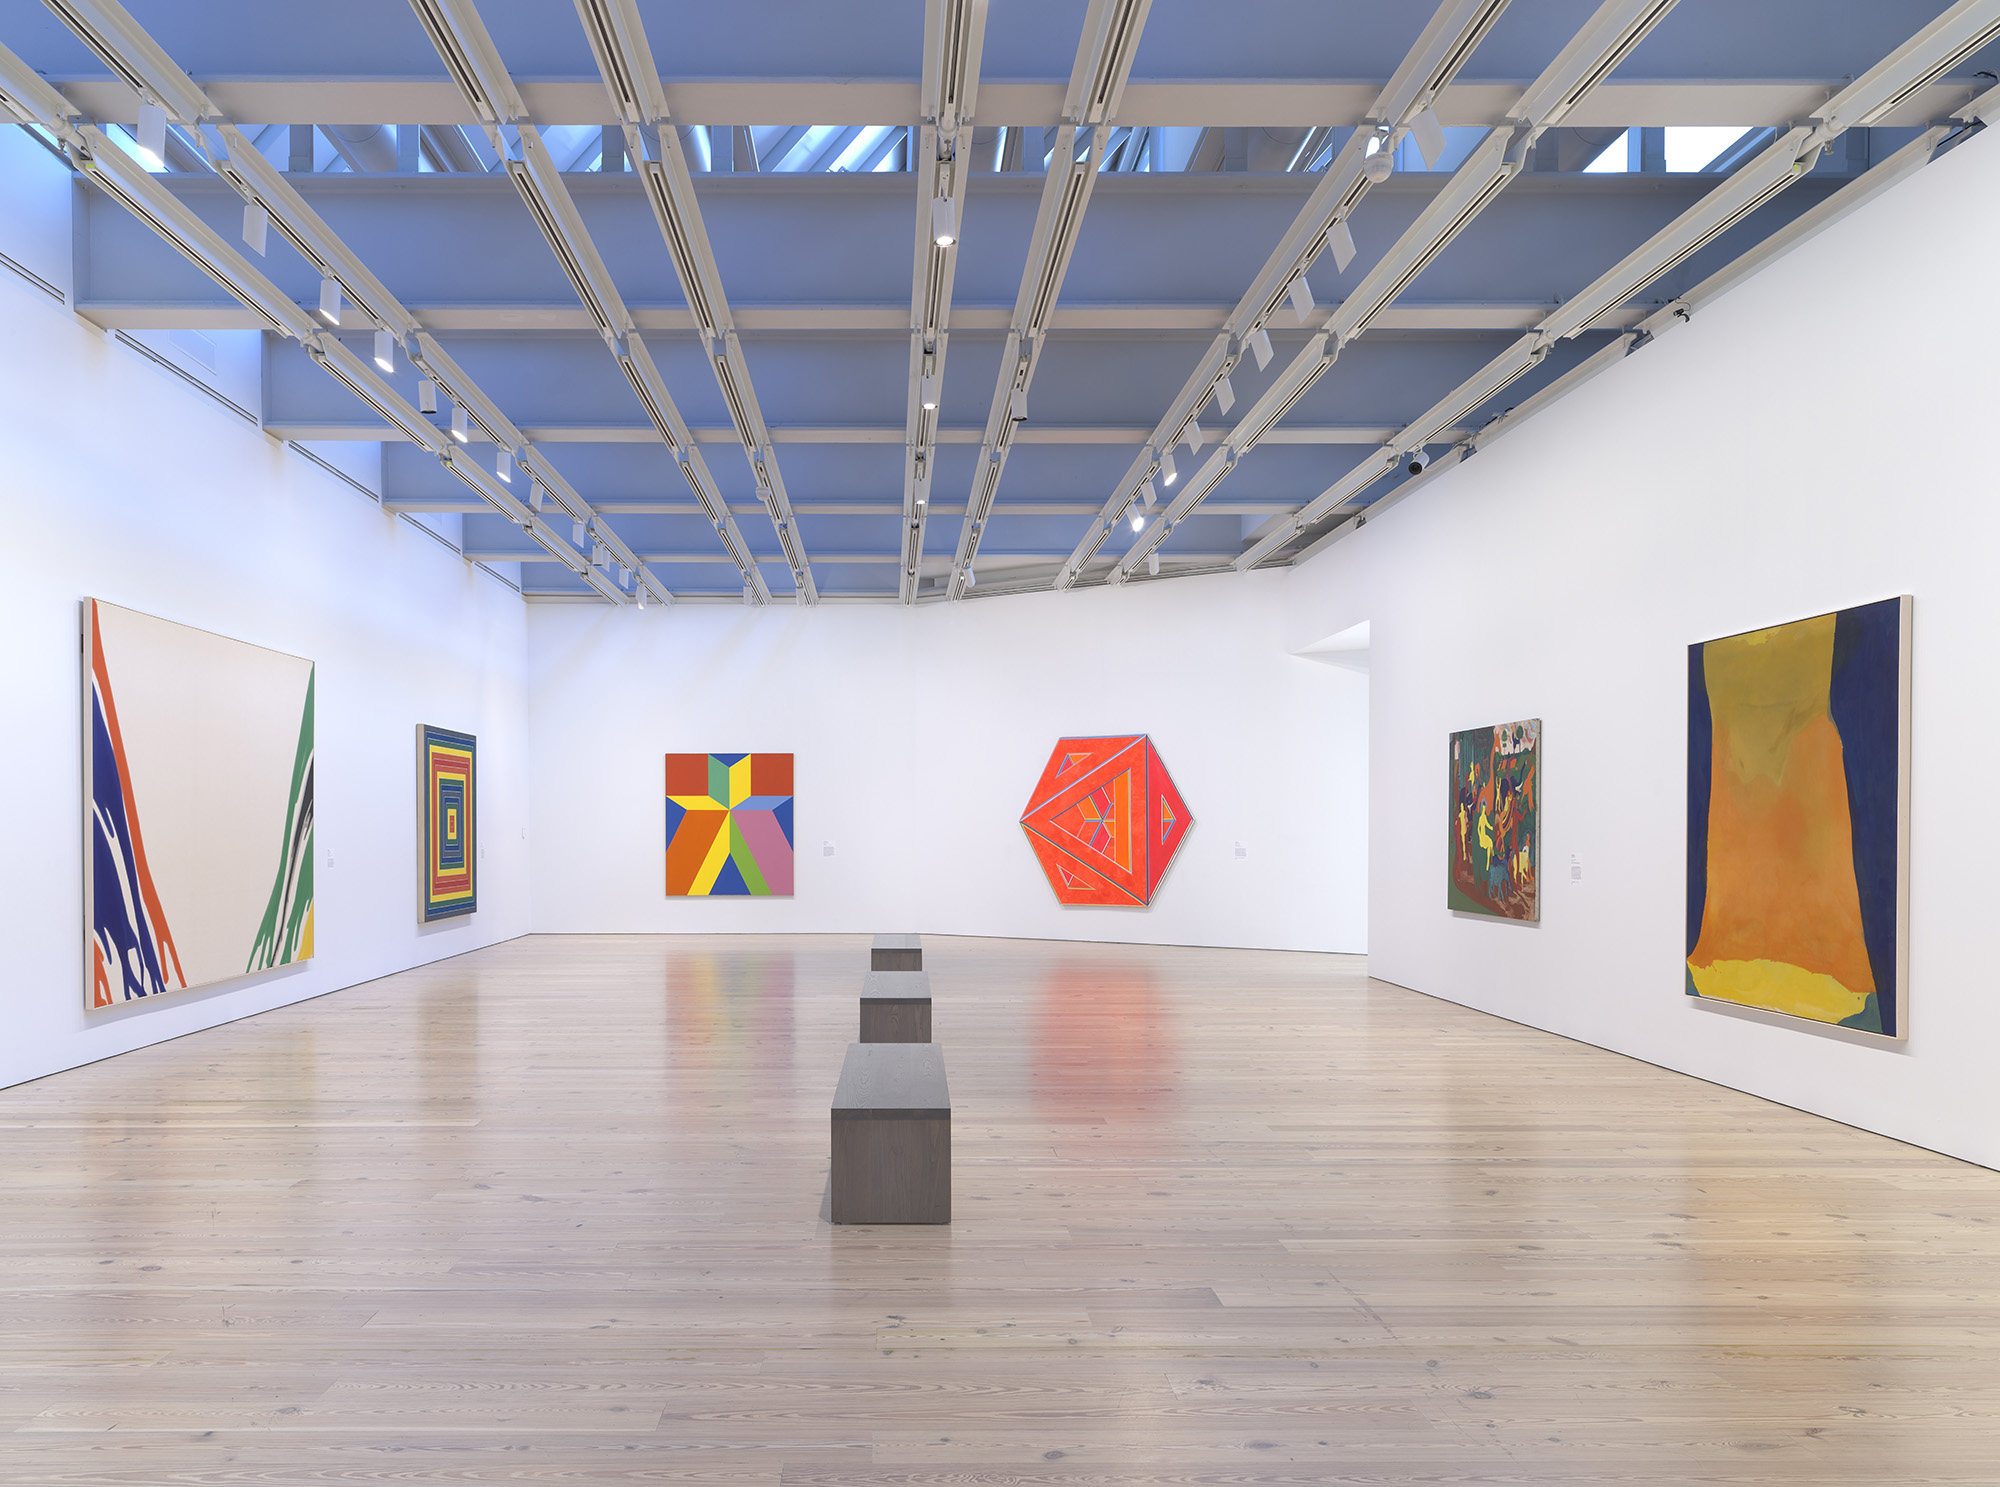 Installation view of  Spilling Over: Painting Color in the 1960s  (Whitney Museum of American Art, New York, March 29-August 2019). From left to right: Morris Louis,  Gamma Delta , 1959-60; Frank Stella,  Gran Cairo , 1962; Miriam Schapiro,  Jigsaw , 1969; Alvin Loving,  Septehedron 34 , 1970; Bob Thompson,  Triumph of Bacchus , 1964; Helen Frankenthaler,  Orange Mood , 1966. Photograph by Ron Amstutz